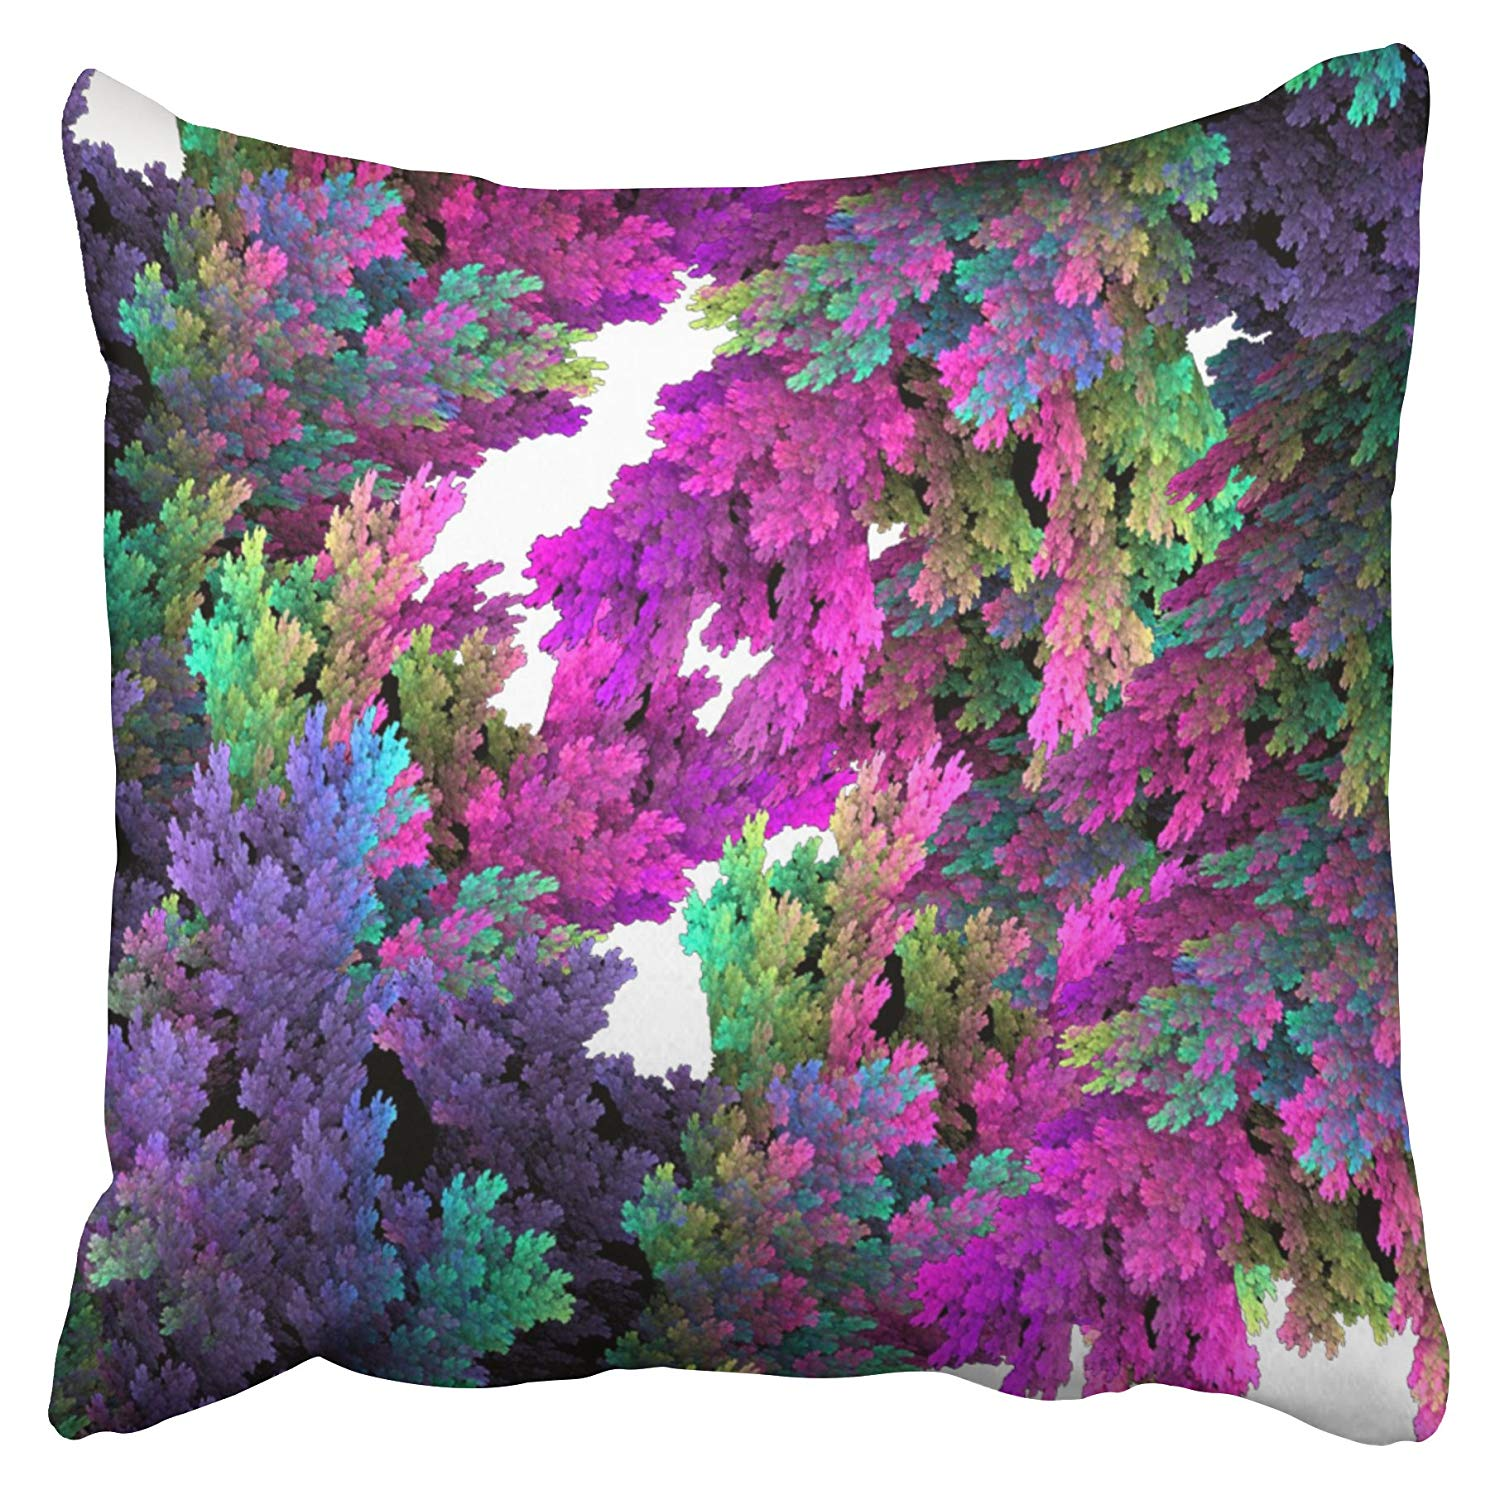 WOPOP Whimsical Neon Pink Teal Purple Floral Coral Pillowcase Cushion Cover 18x18 inch